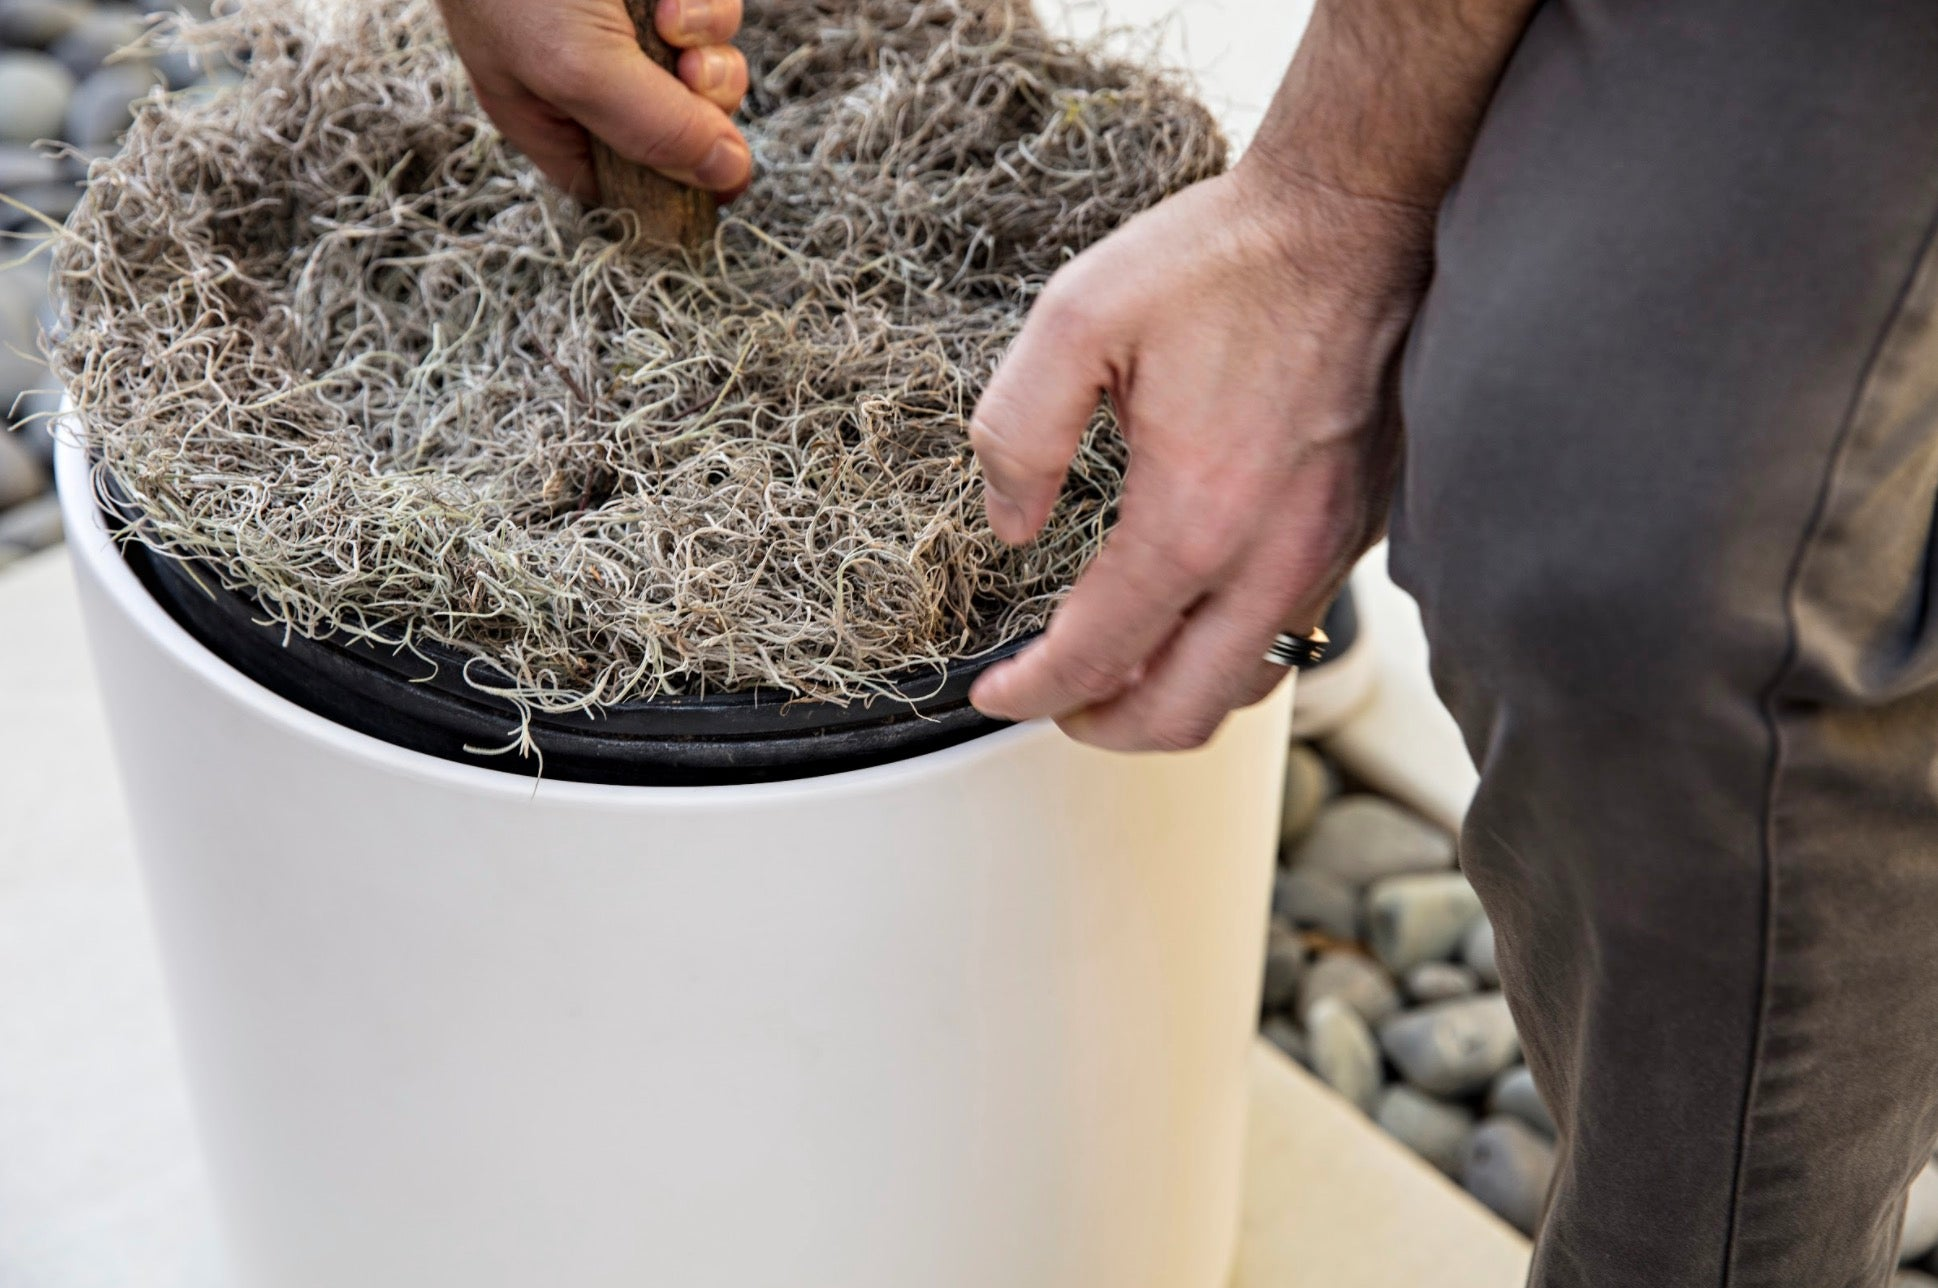 Grower Pots vs. Direct Potting with Revival Ceramics